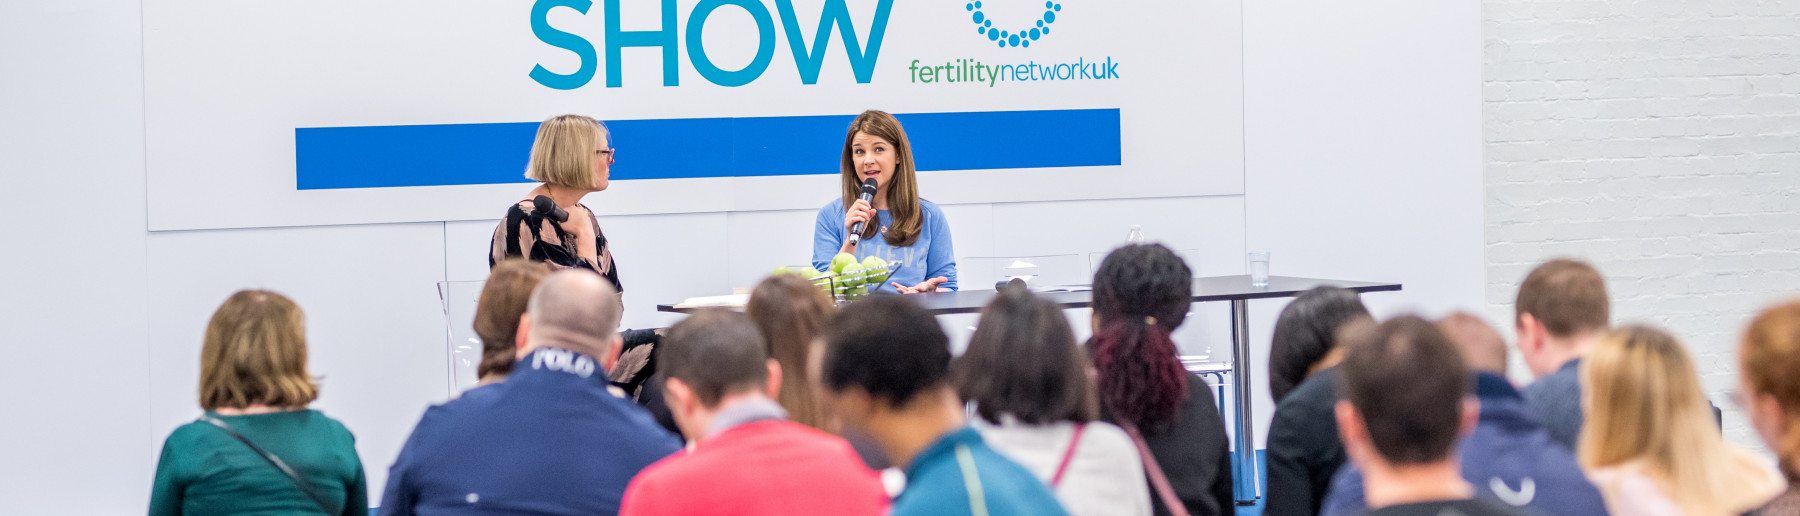 Let's Talk Fertility Stage, in association with Fertility Network UK and IVF babble